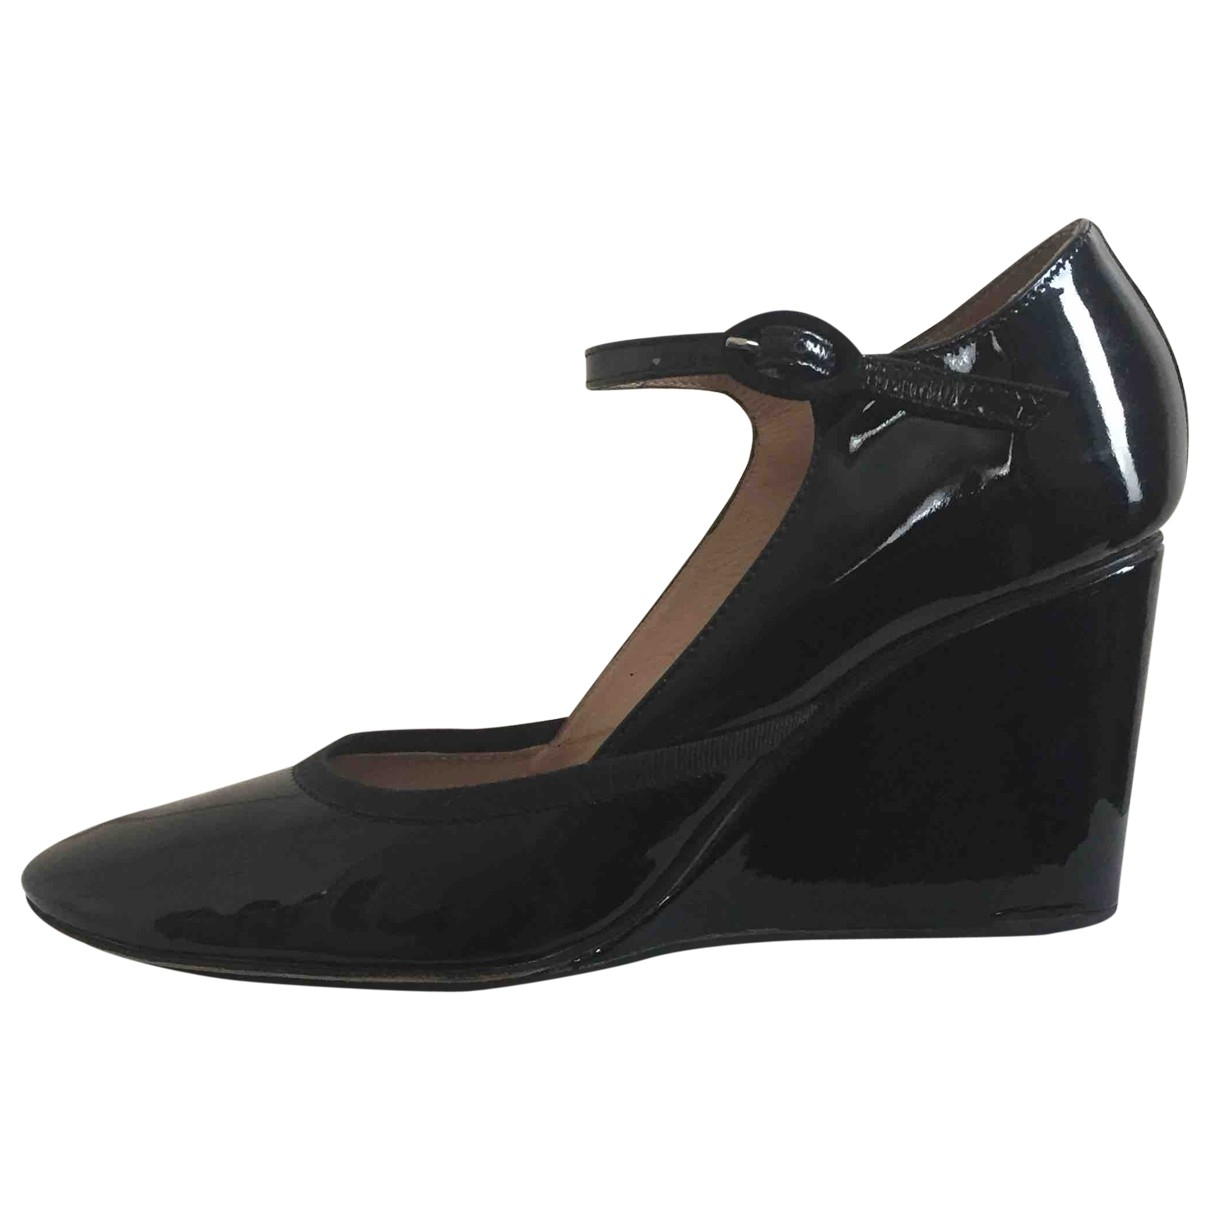 Repetto \N Black Patent leather Heels for Women 40 EU